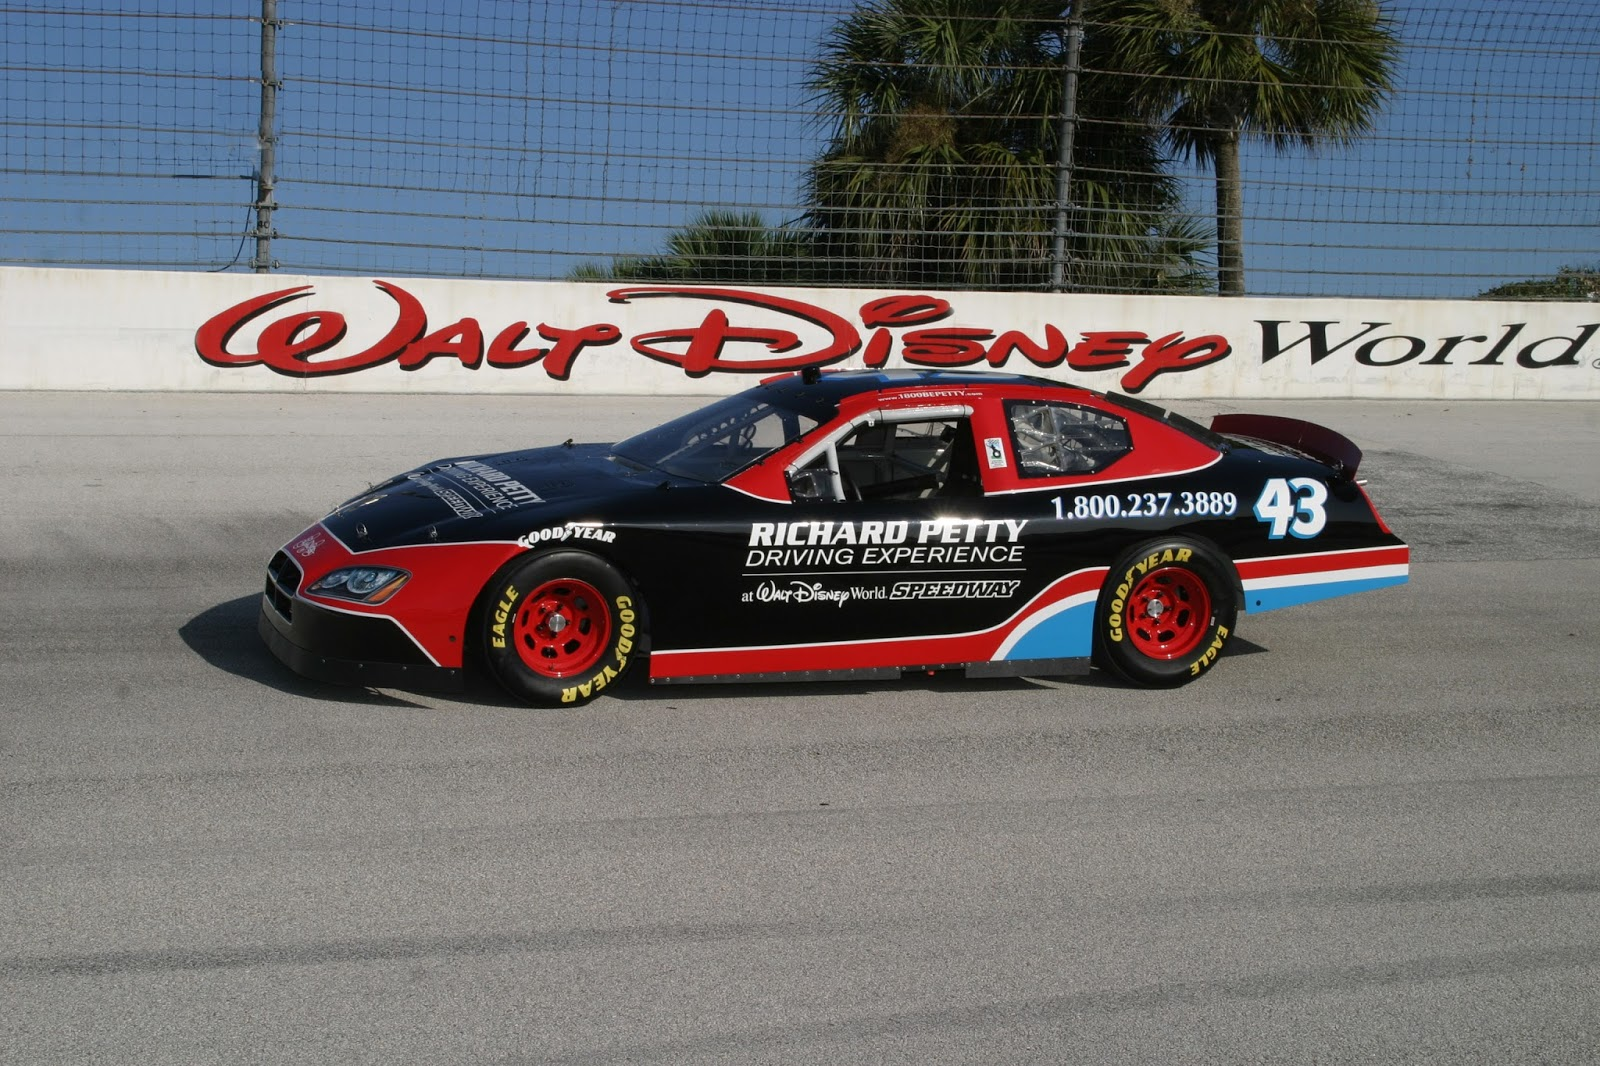 Richard Petty Driving Experience, Walt Disney World